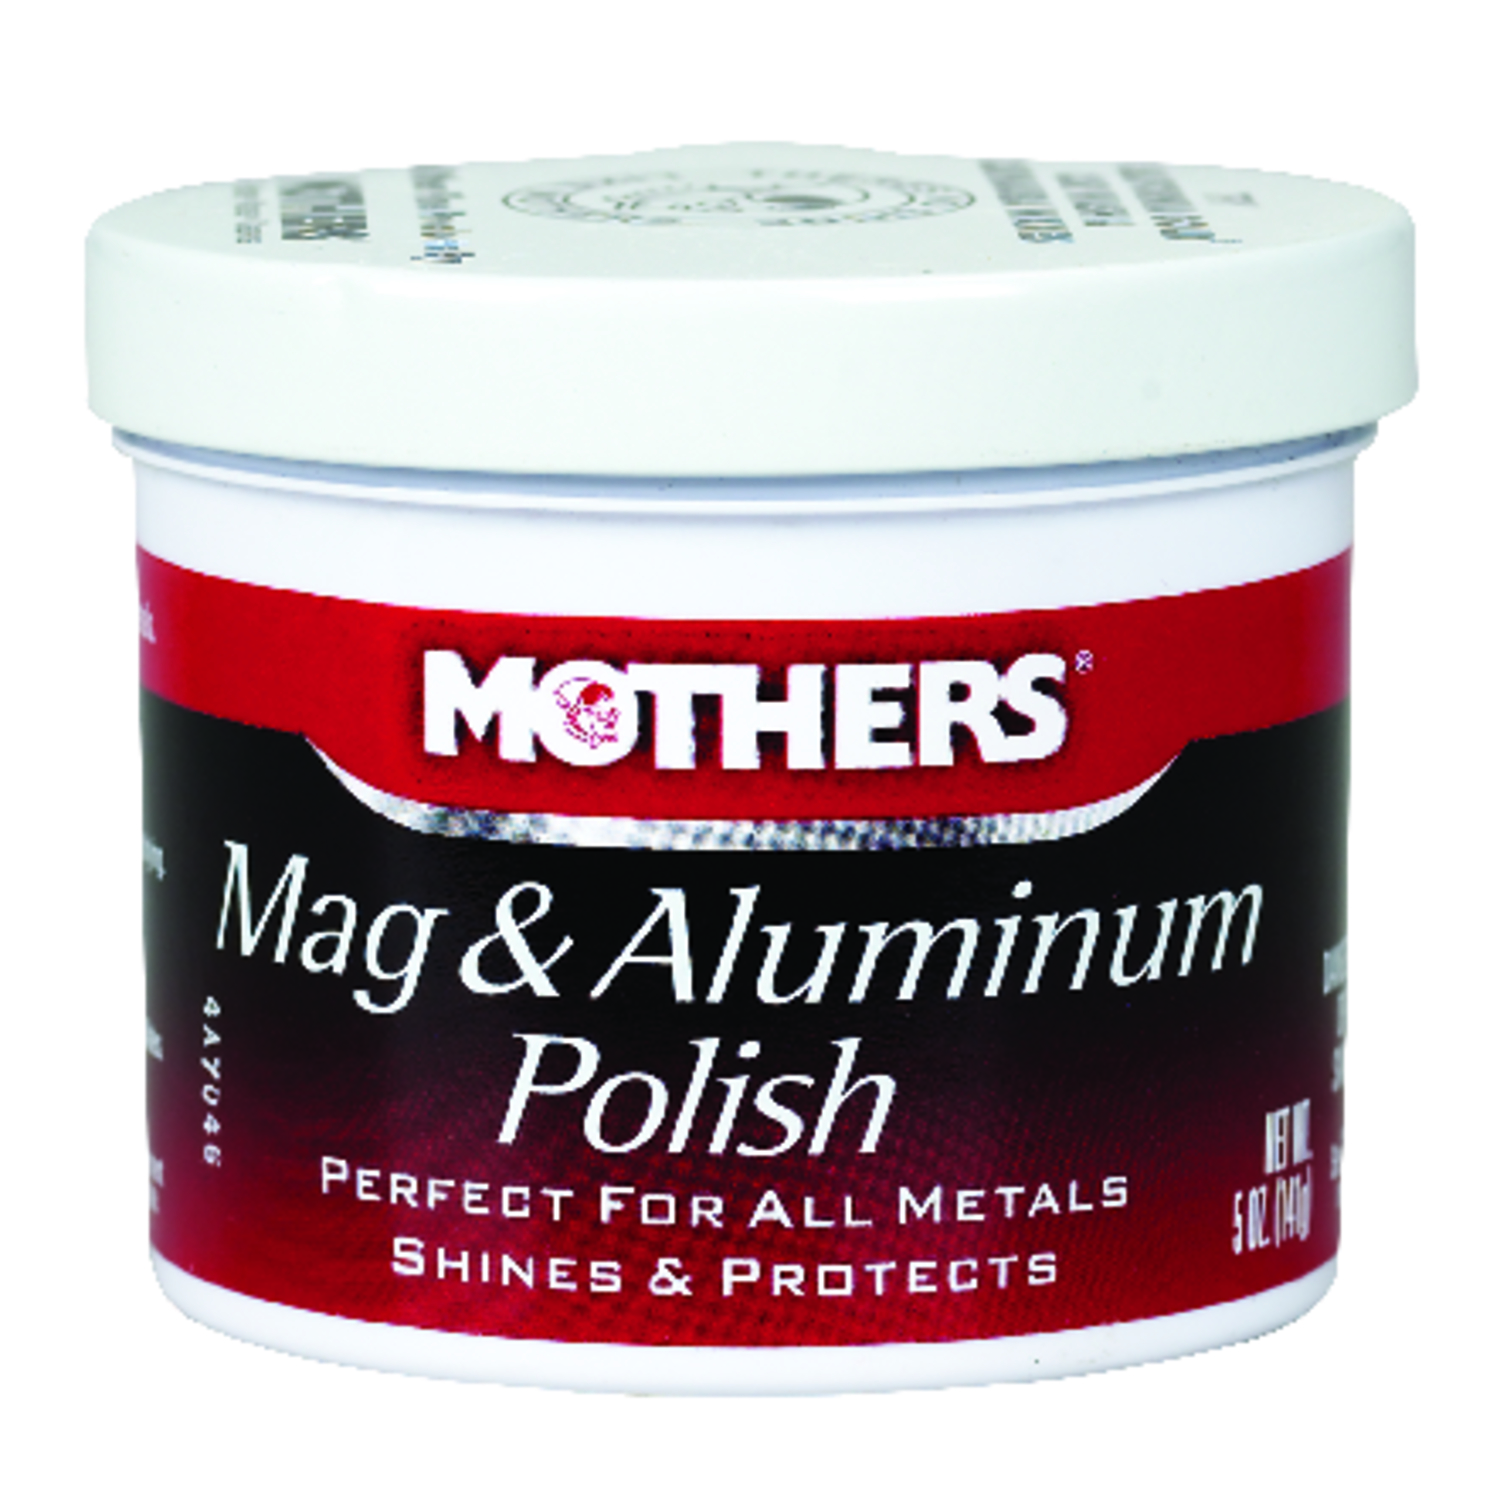 Mothers  Mag & Aluminum Polish  Paste  Automobile Polish  5 oz. For Metals